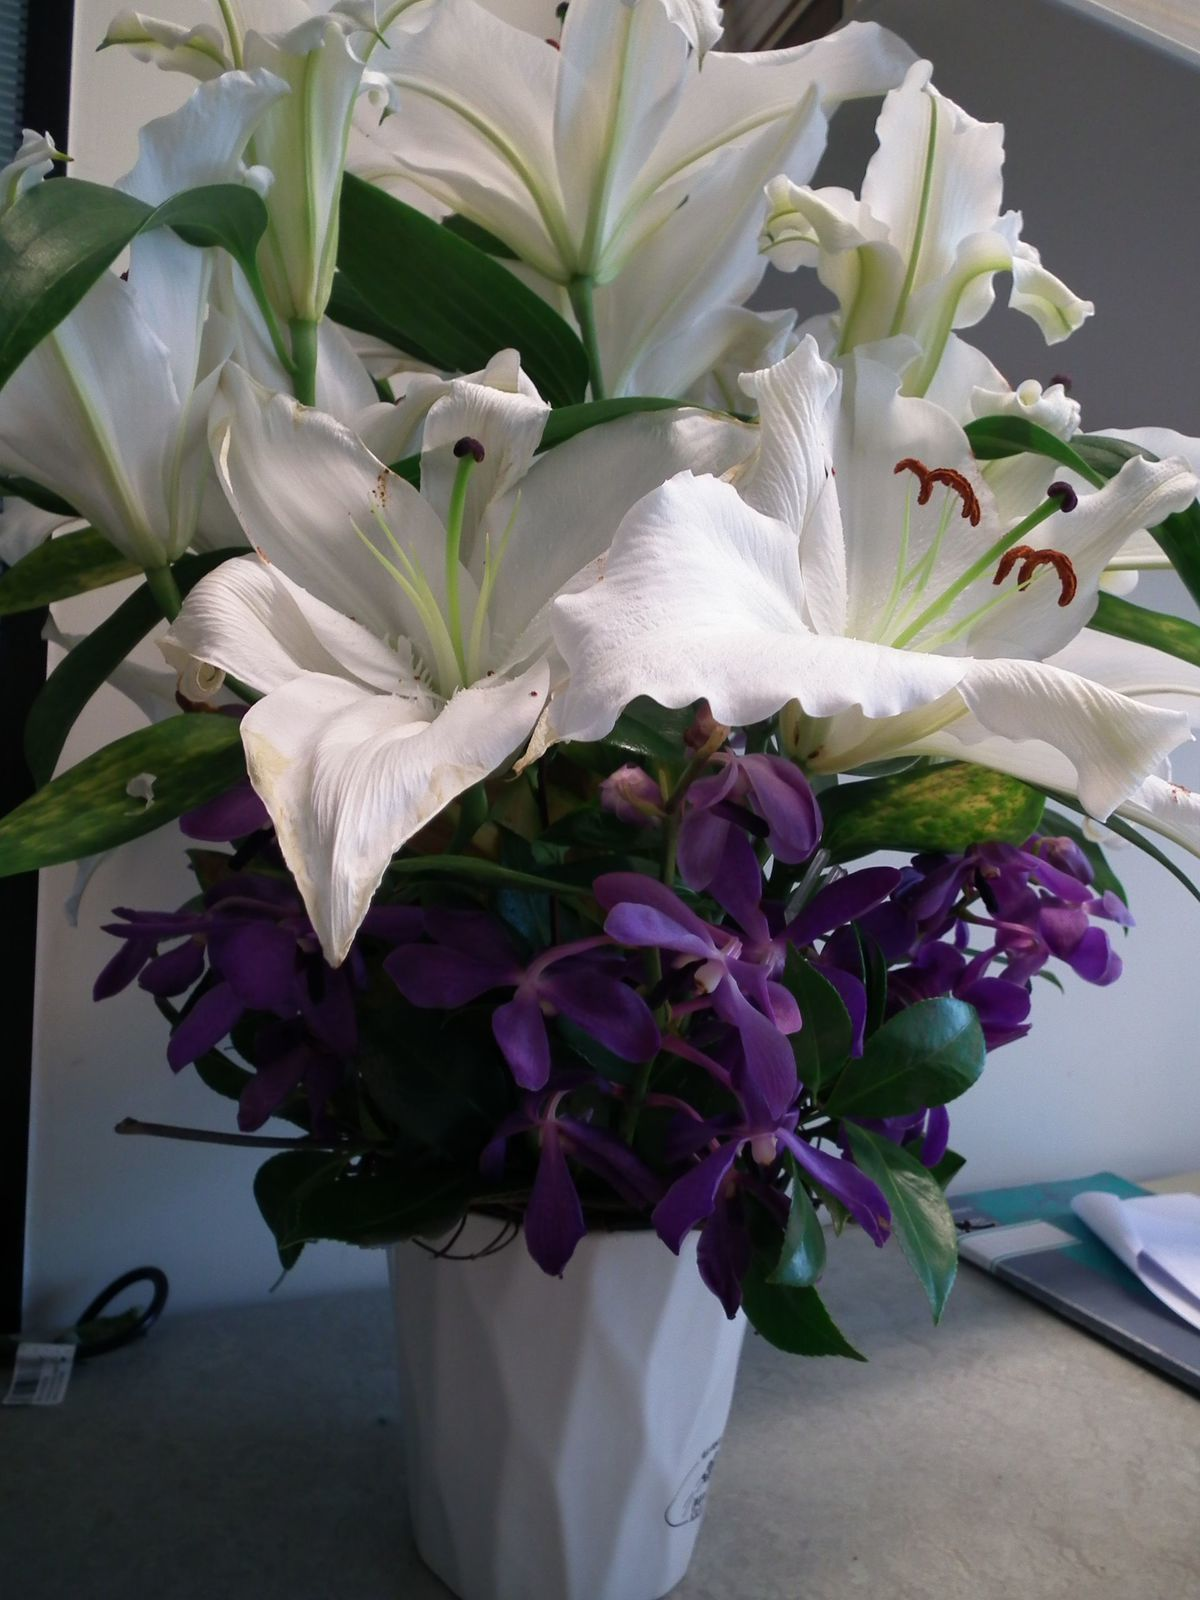 Un beau bouquet qui sent admirablement bon!